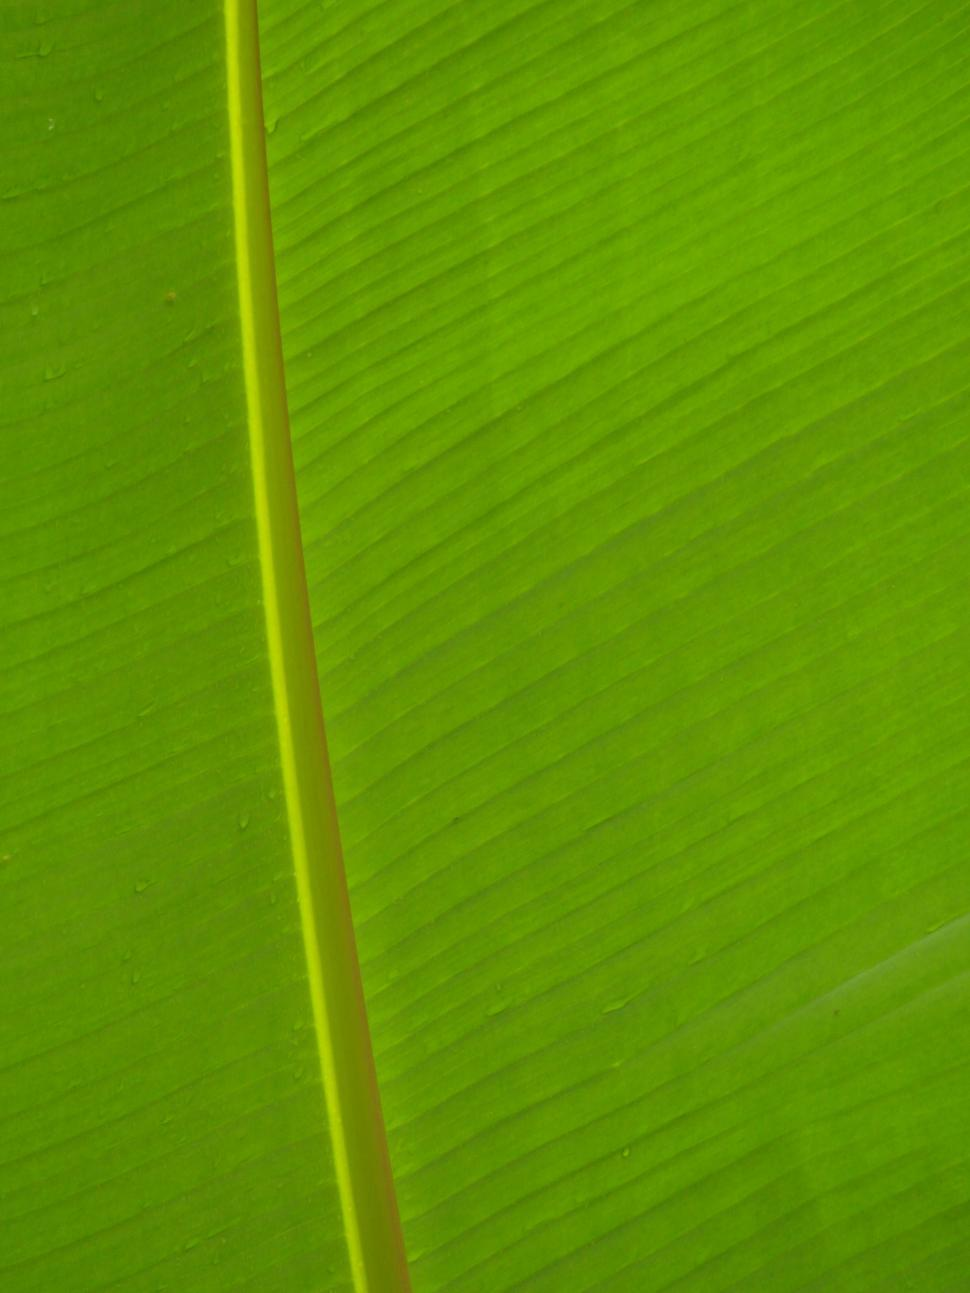 Download Free Stock HD Photo of Banana Leaf Background Online